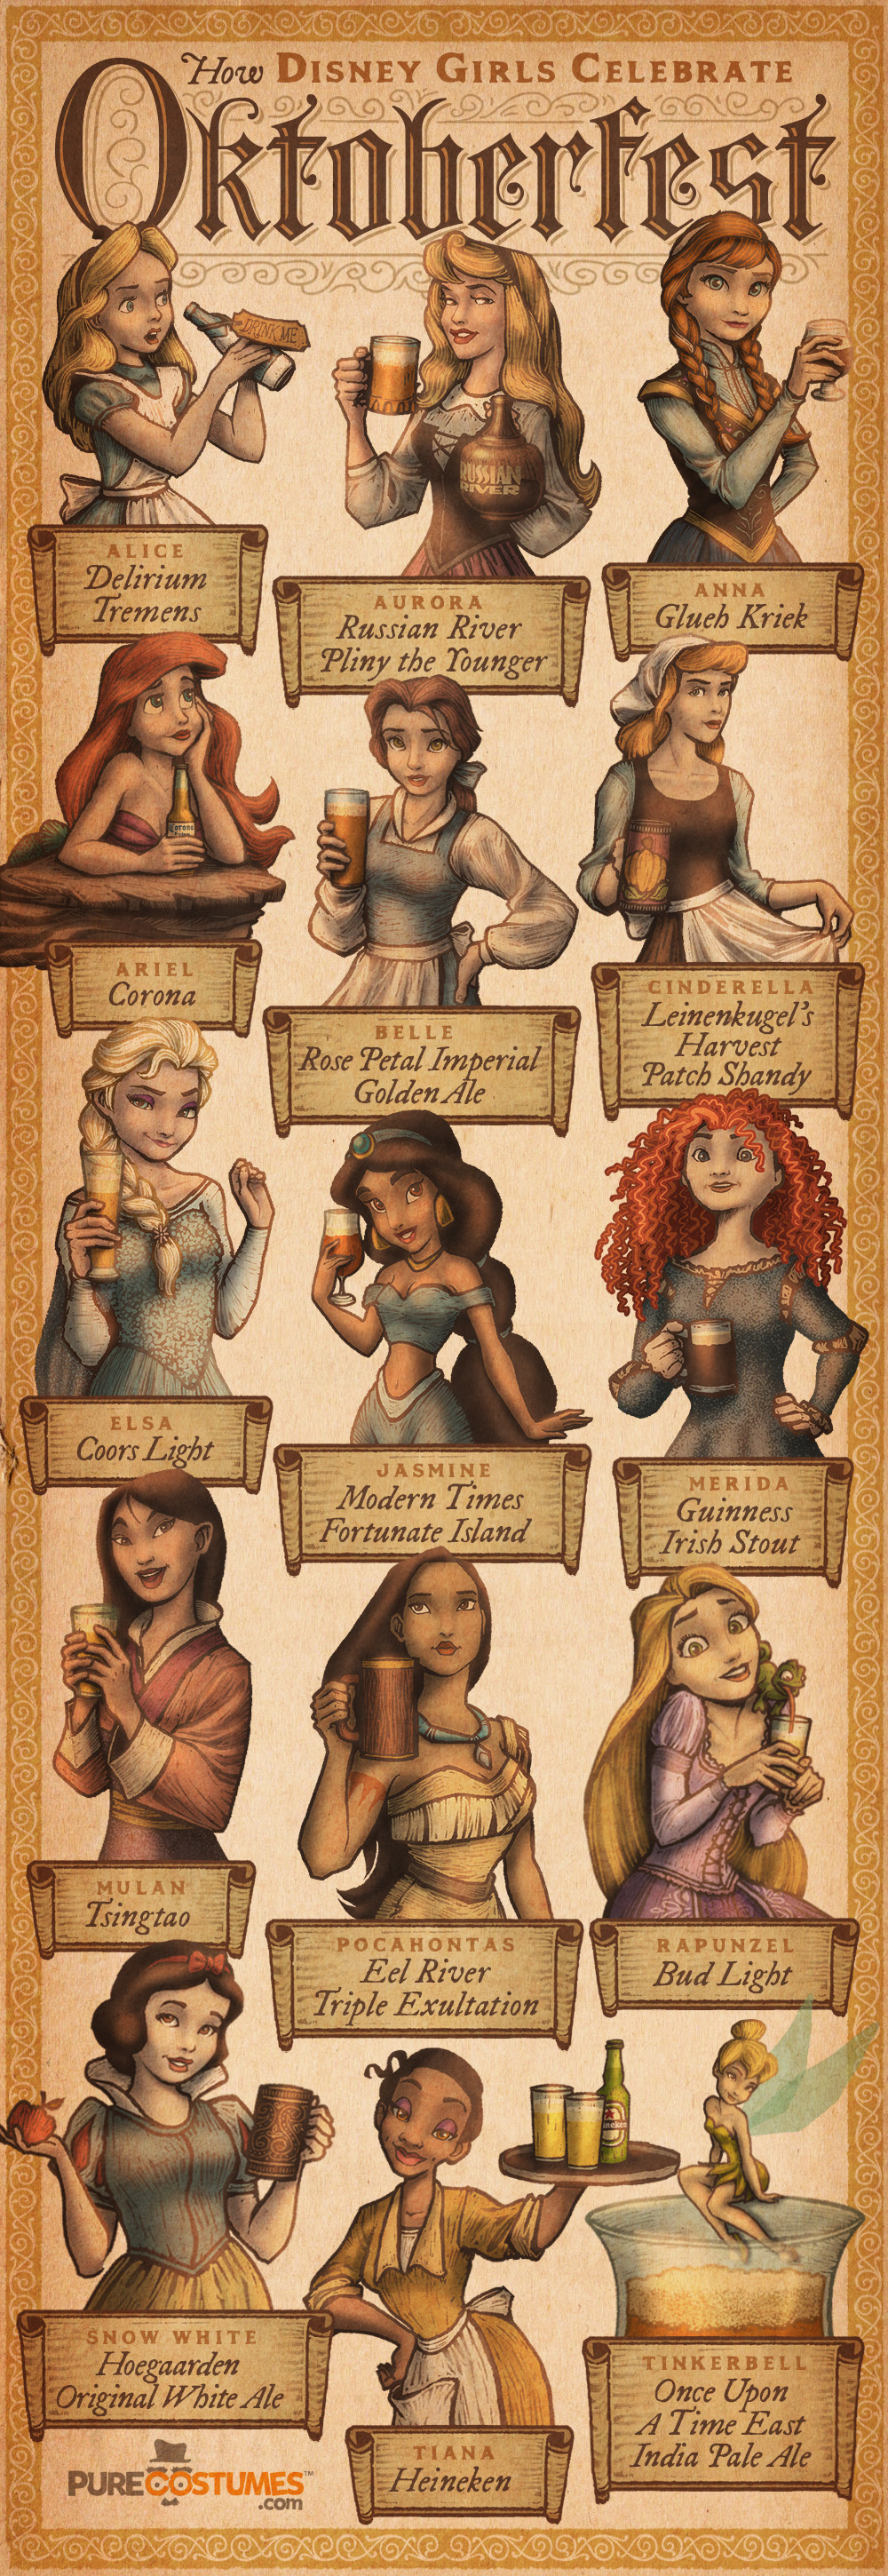 How Disney Girls Celebrate Oktoberfest Infographic